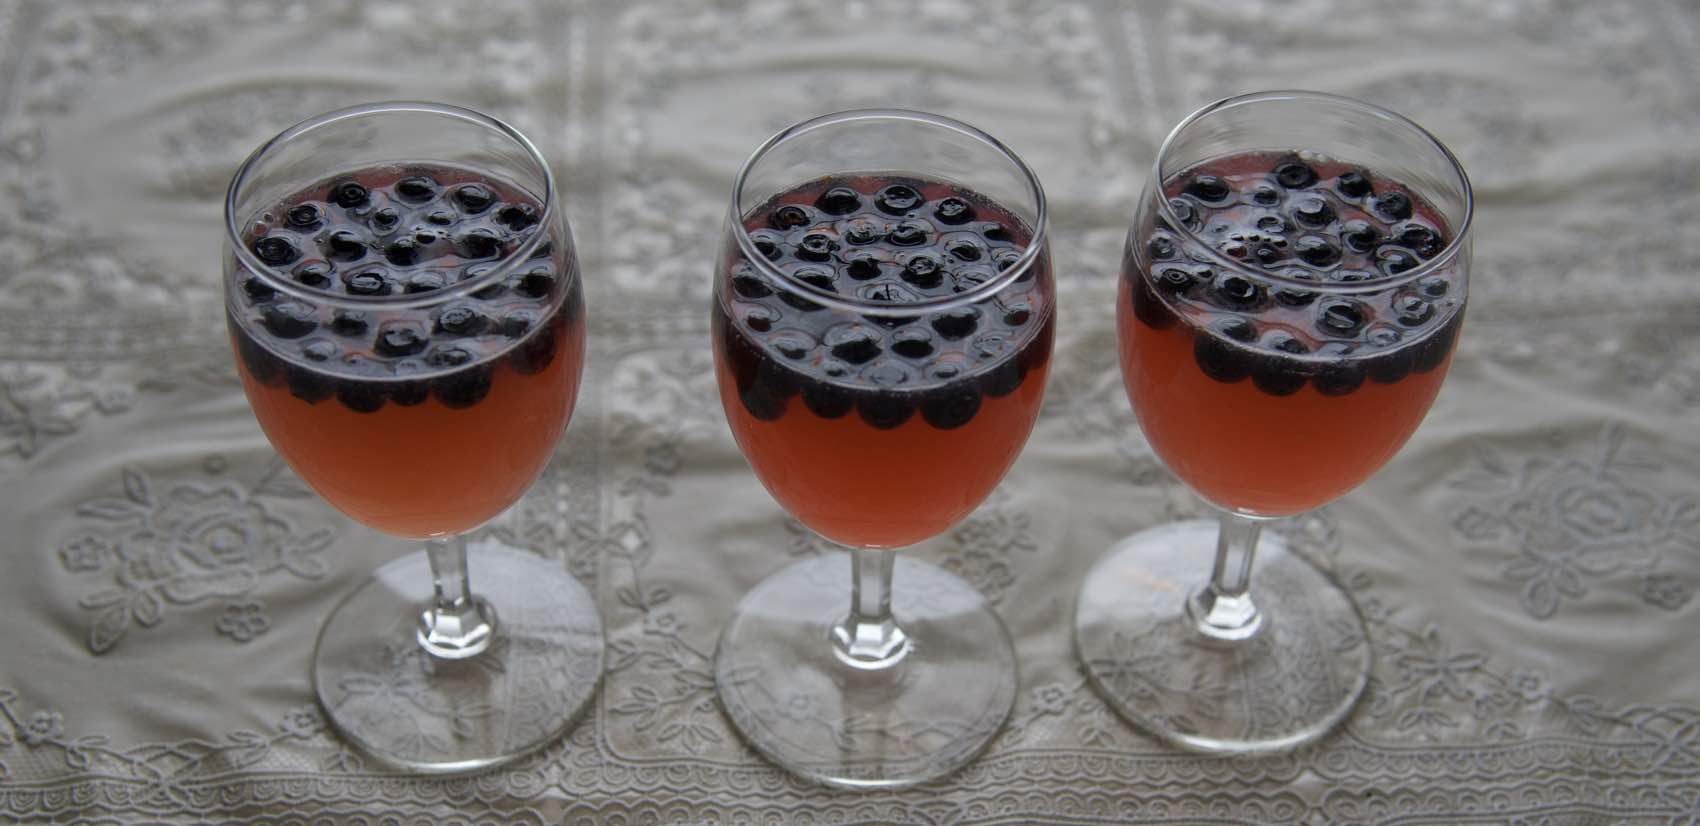 BLUEBERRY DILL: This cocktail was made of Mill Dill aquavit and fresh blueberries.